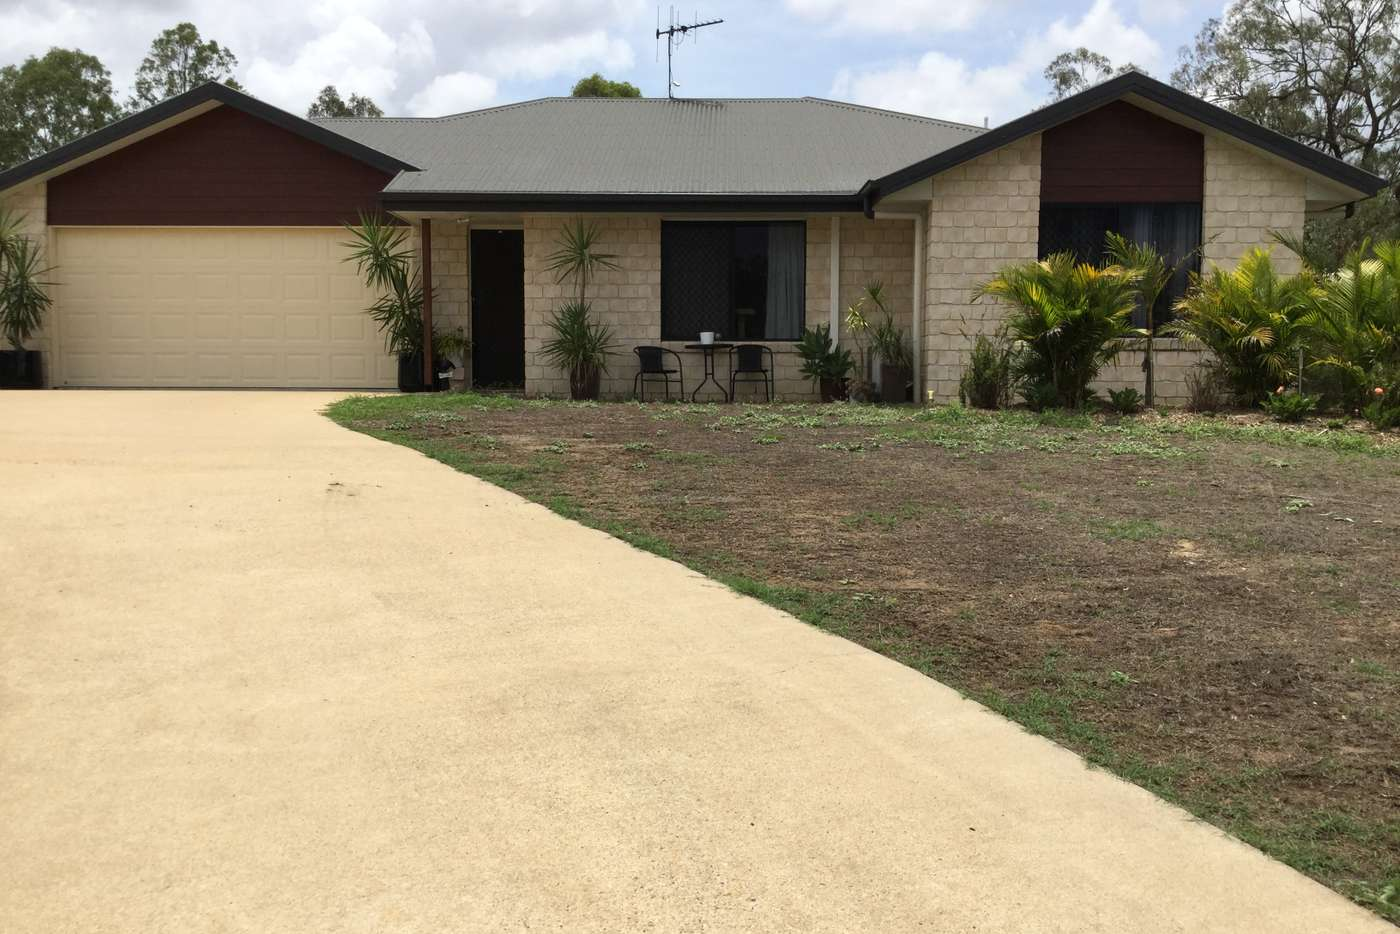 Main view of Homely house listing, 5 Possum Place, Apple Tree Creek QLD 4660